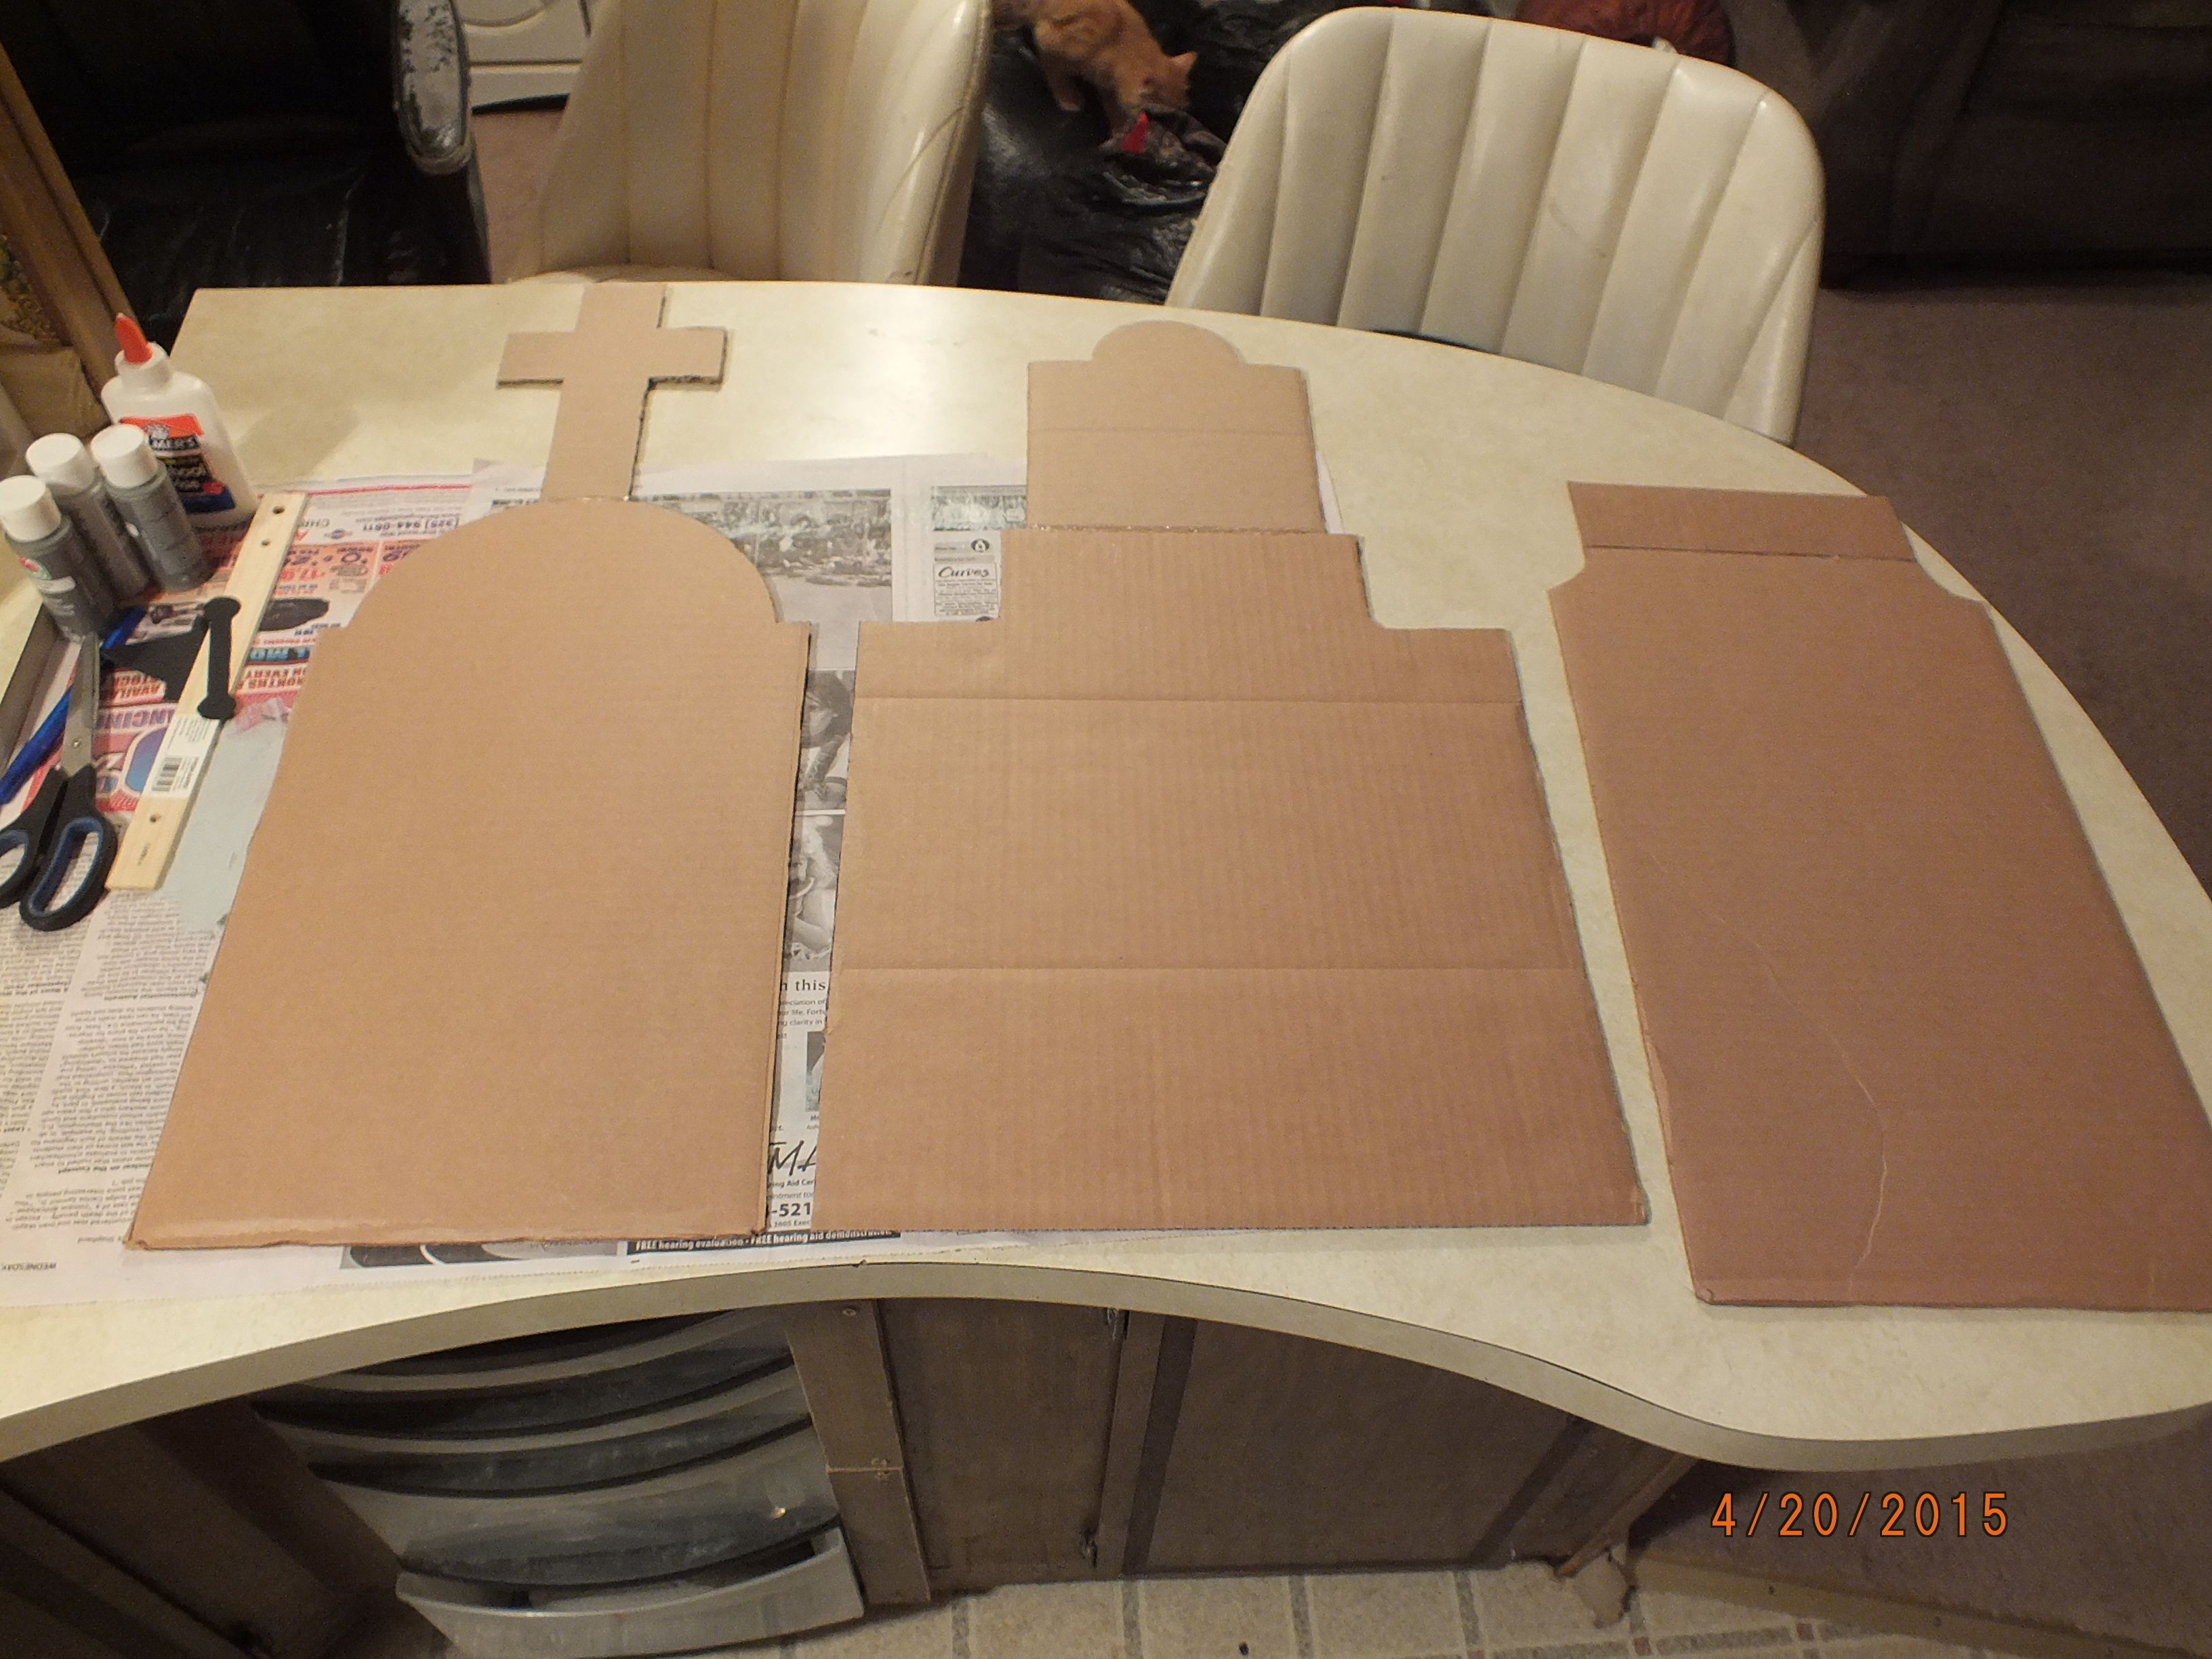 Tombstone templates cut out of cardboard. | Halloween | Pinterest ...